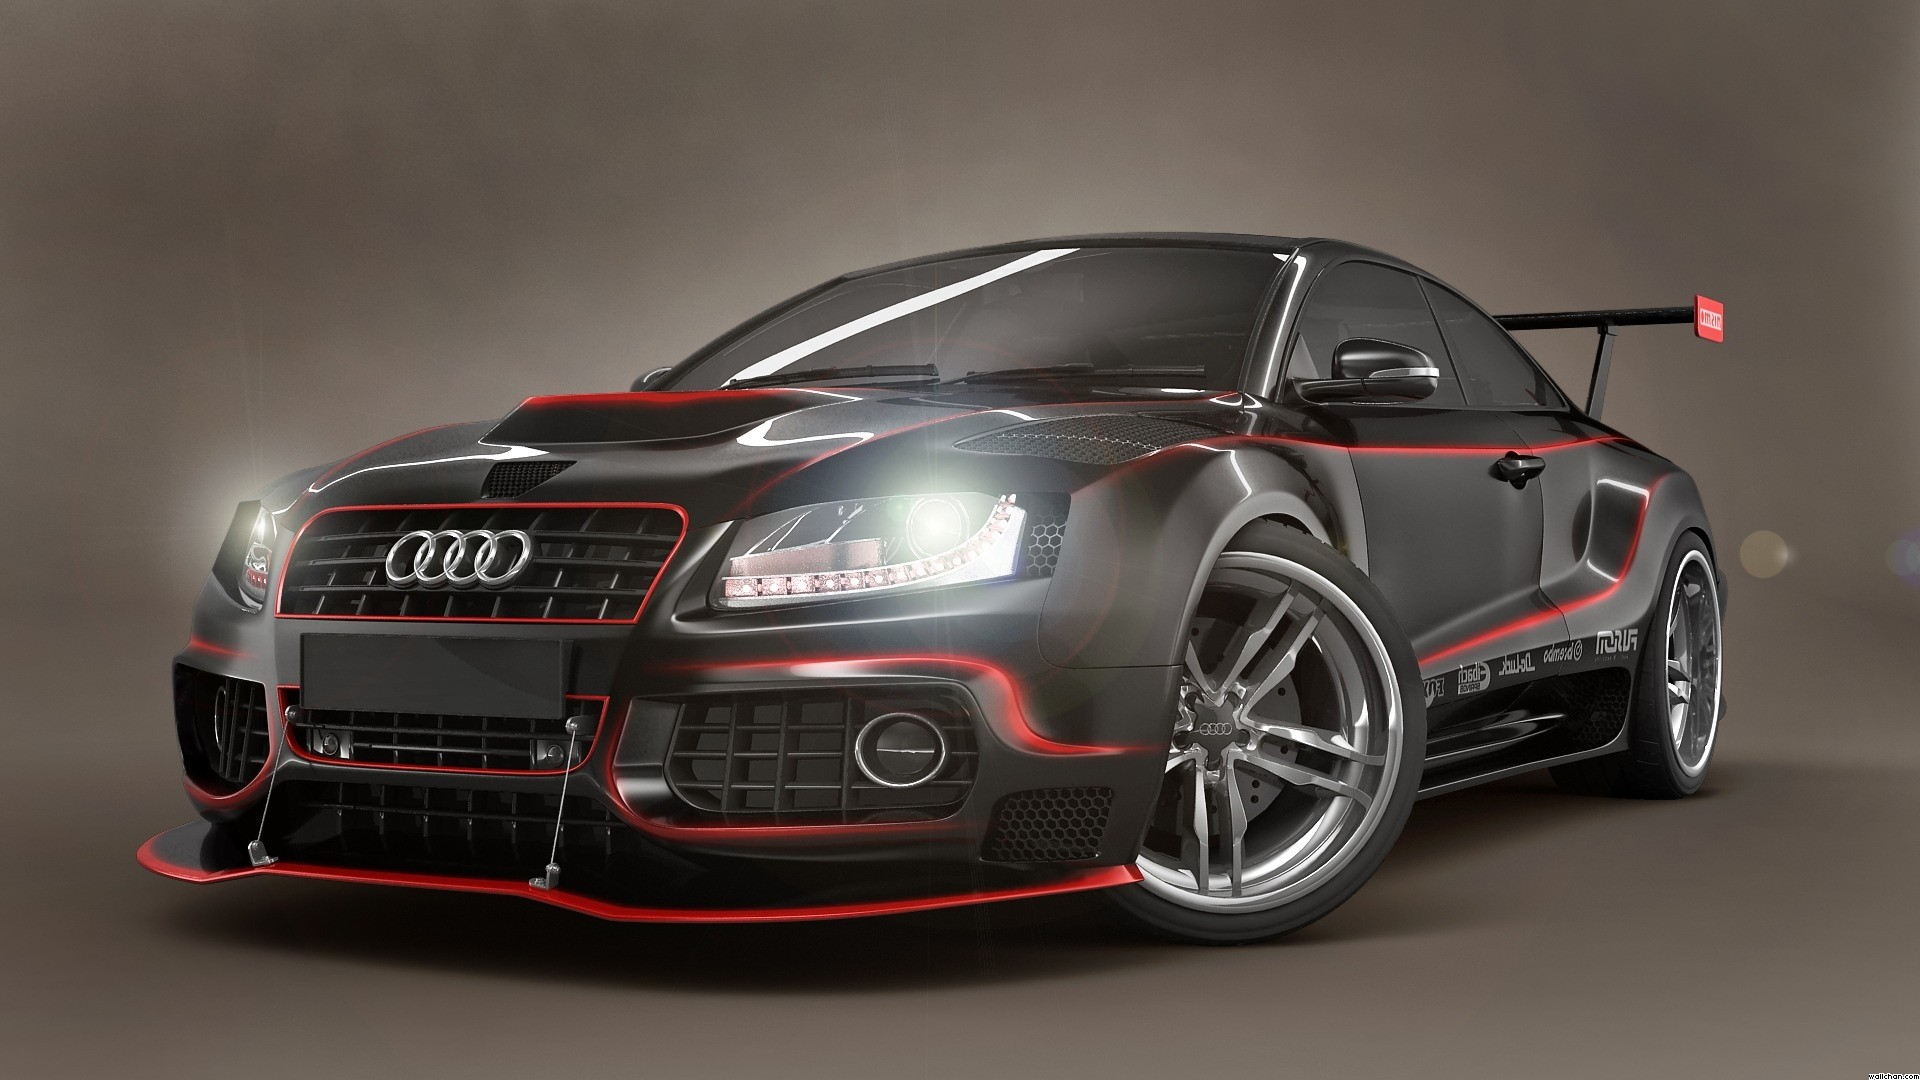 1920x1080 ... Cool HD Audi Wallpapers For Free Download